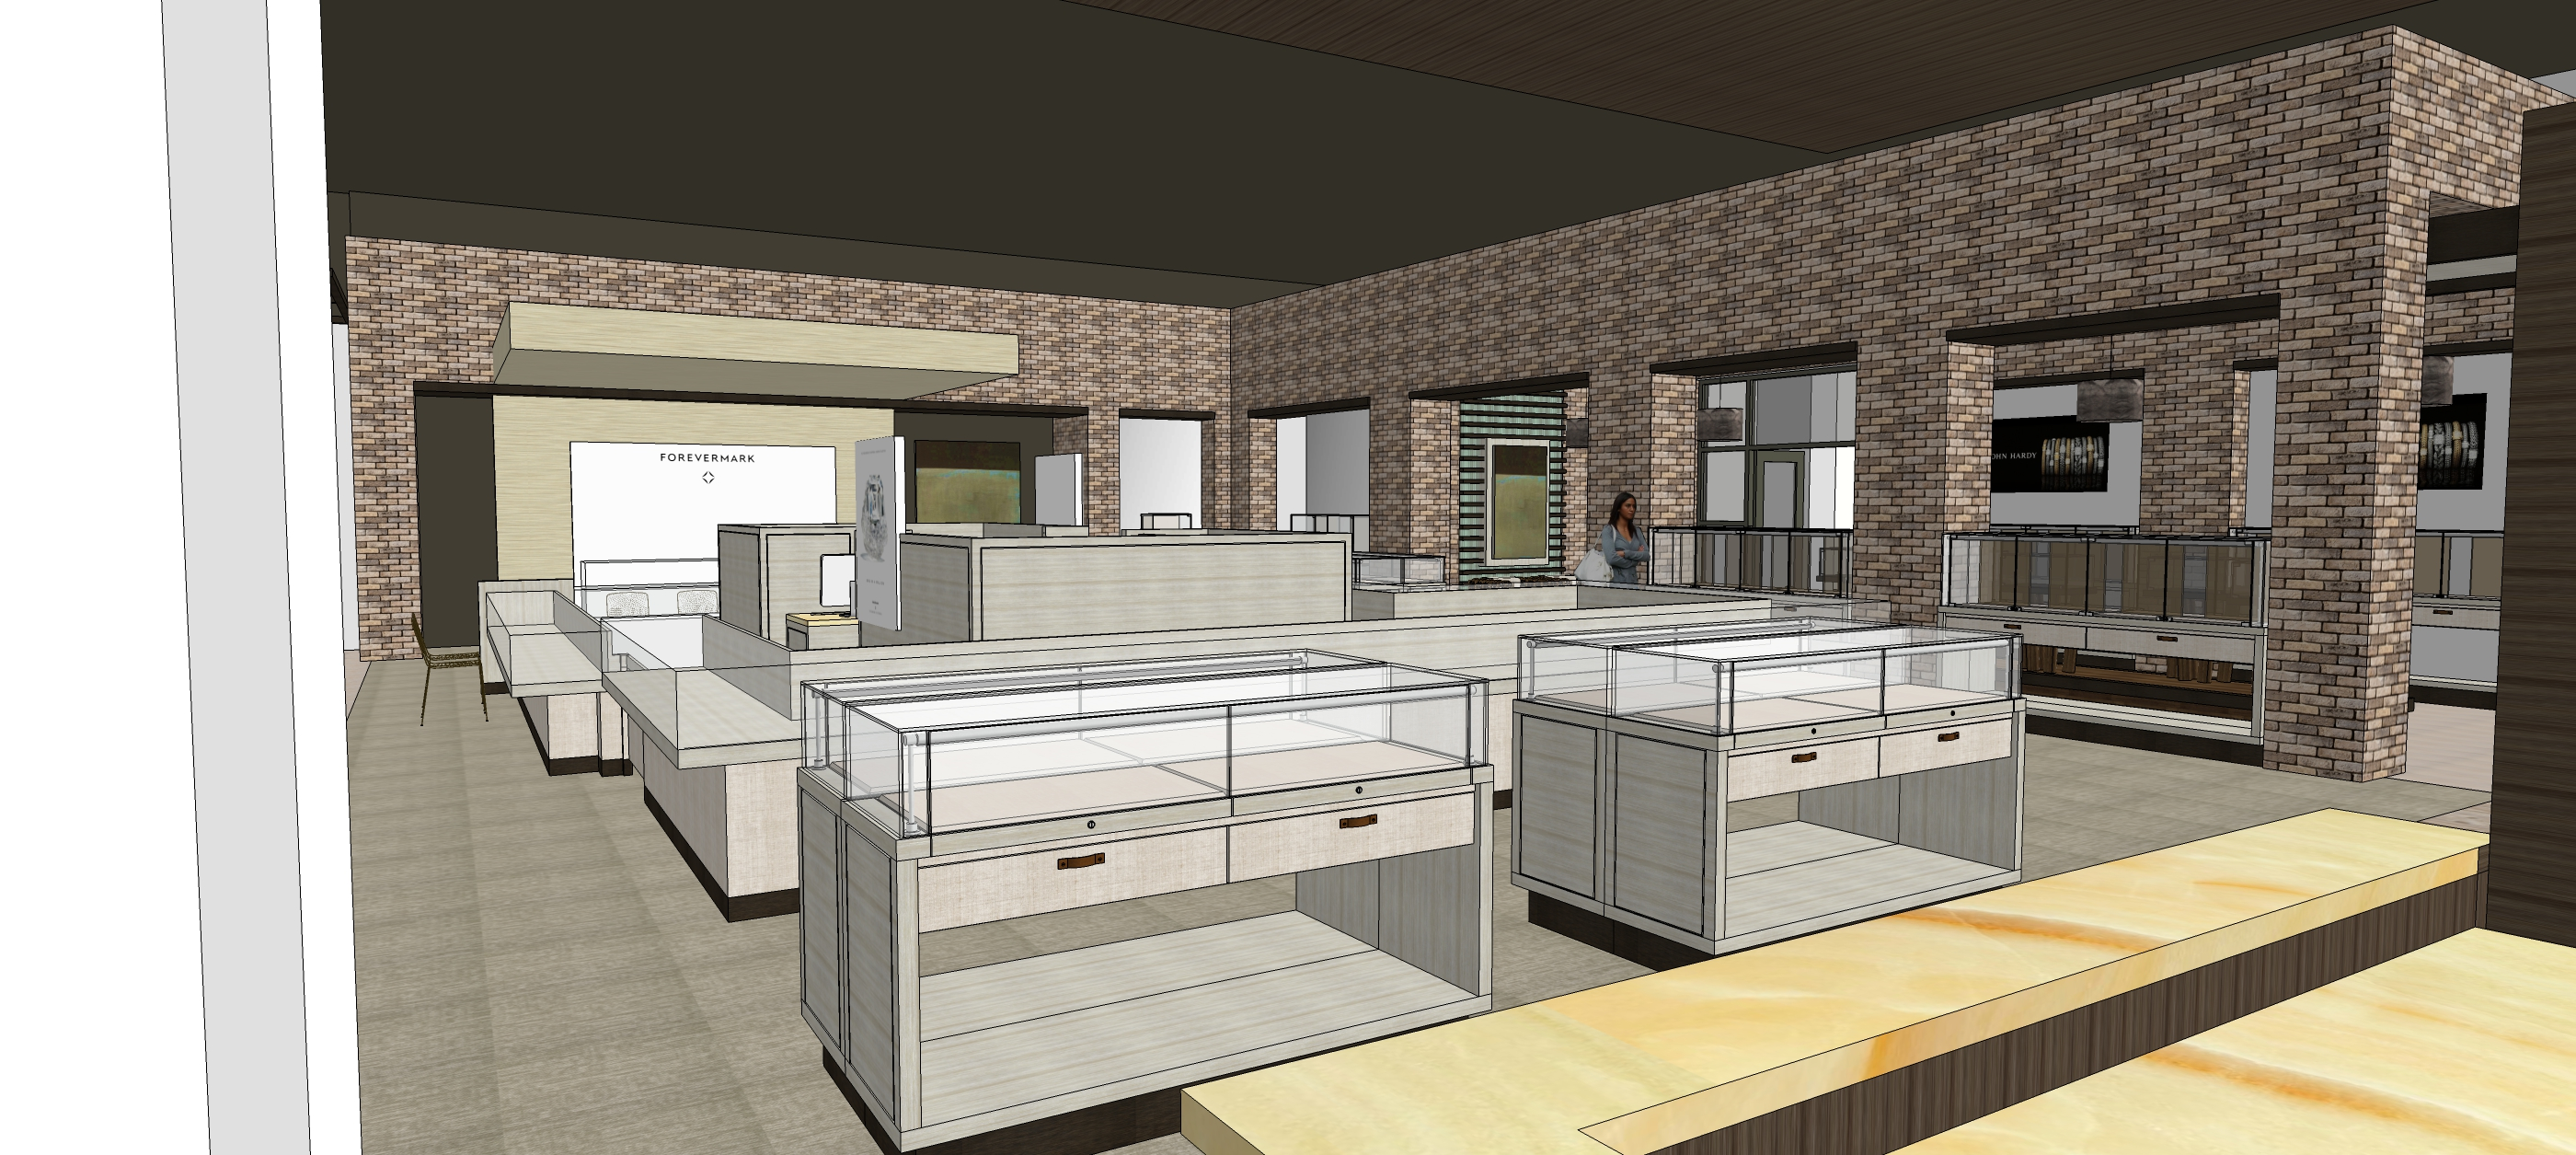 Construction Is Underway On A New 8 000 Sf Jewelry Buildout In The Florida Panhandle Finished Photos To Follow